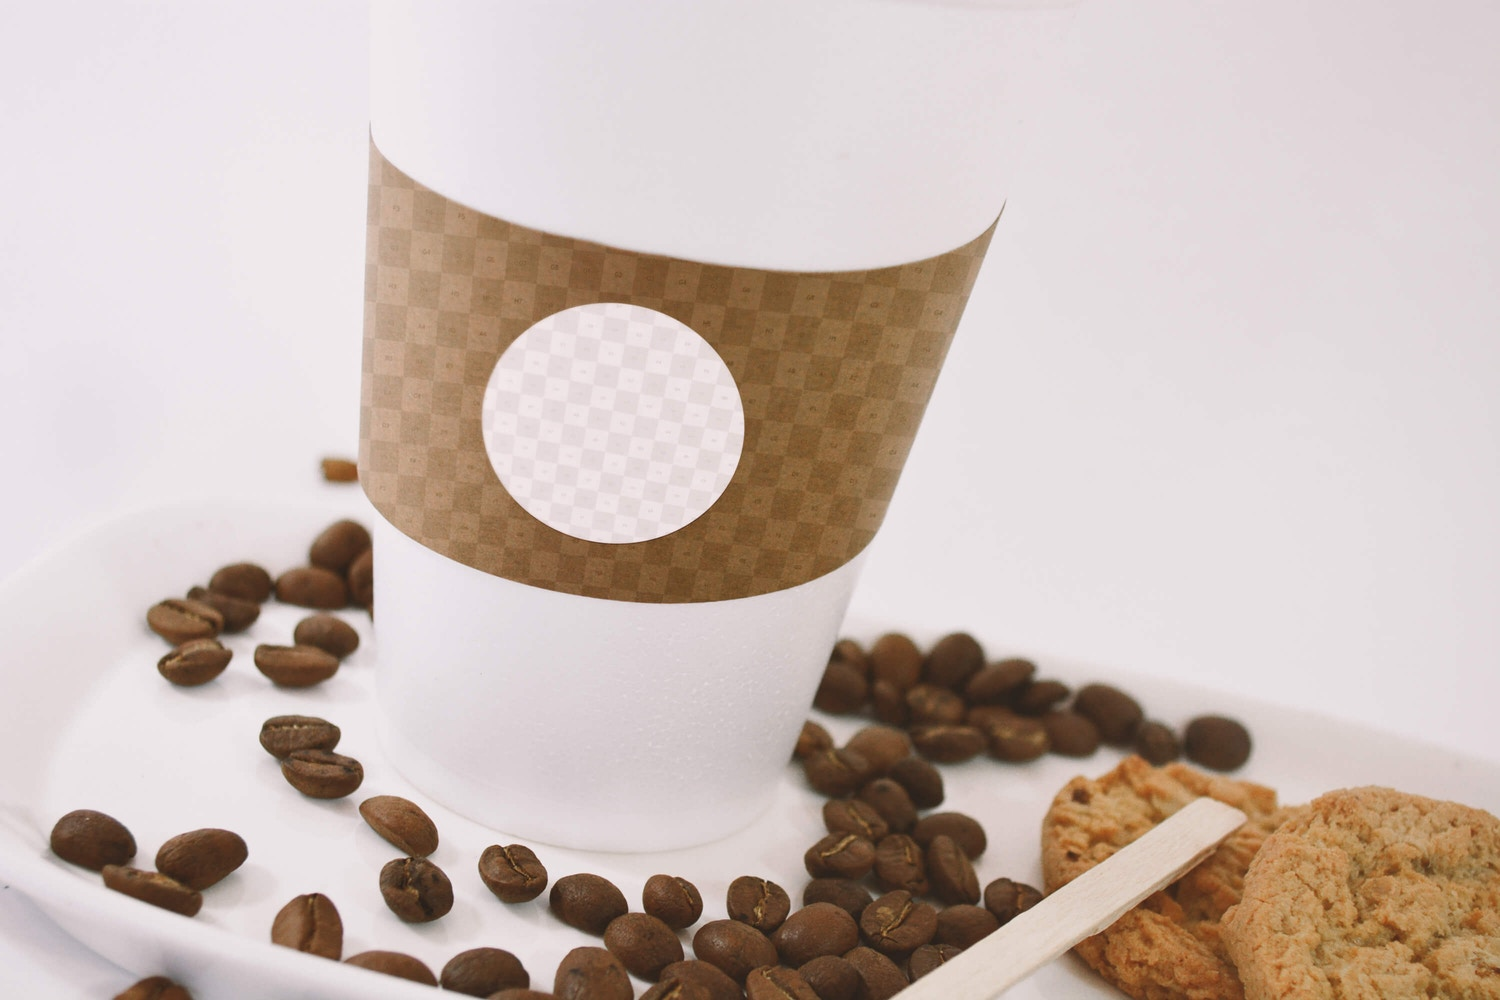 Large Coffee Cup Mockup - Close up View (2) by Eduardo Mejia on Original Mockups